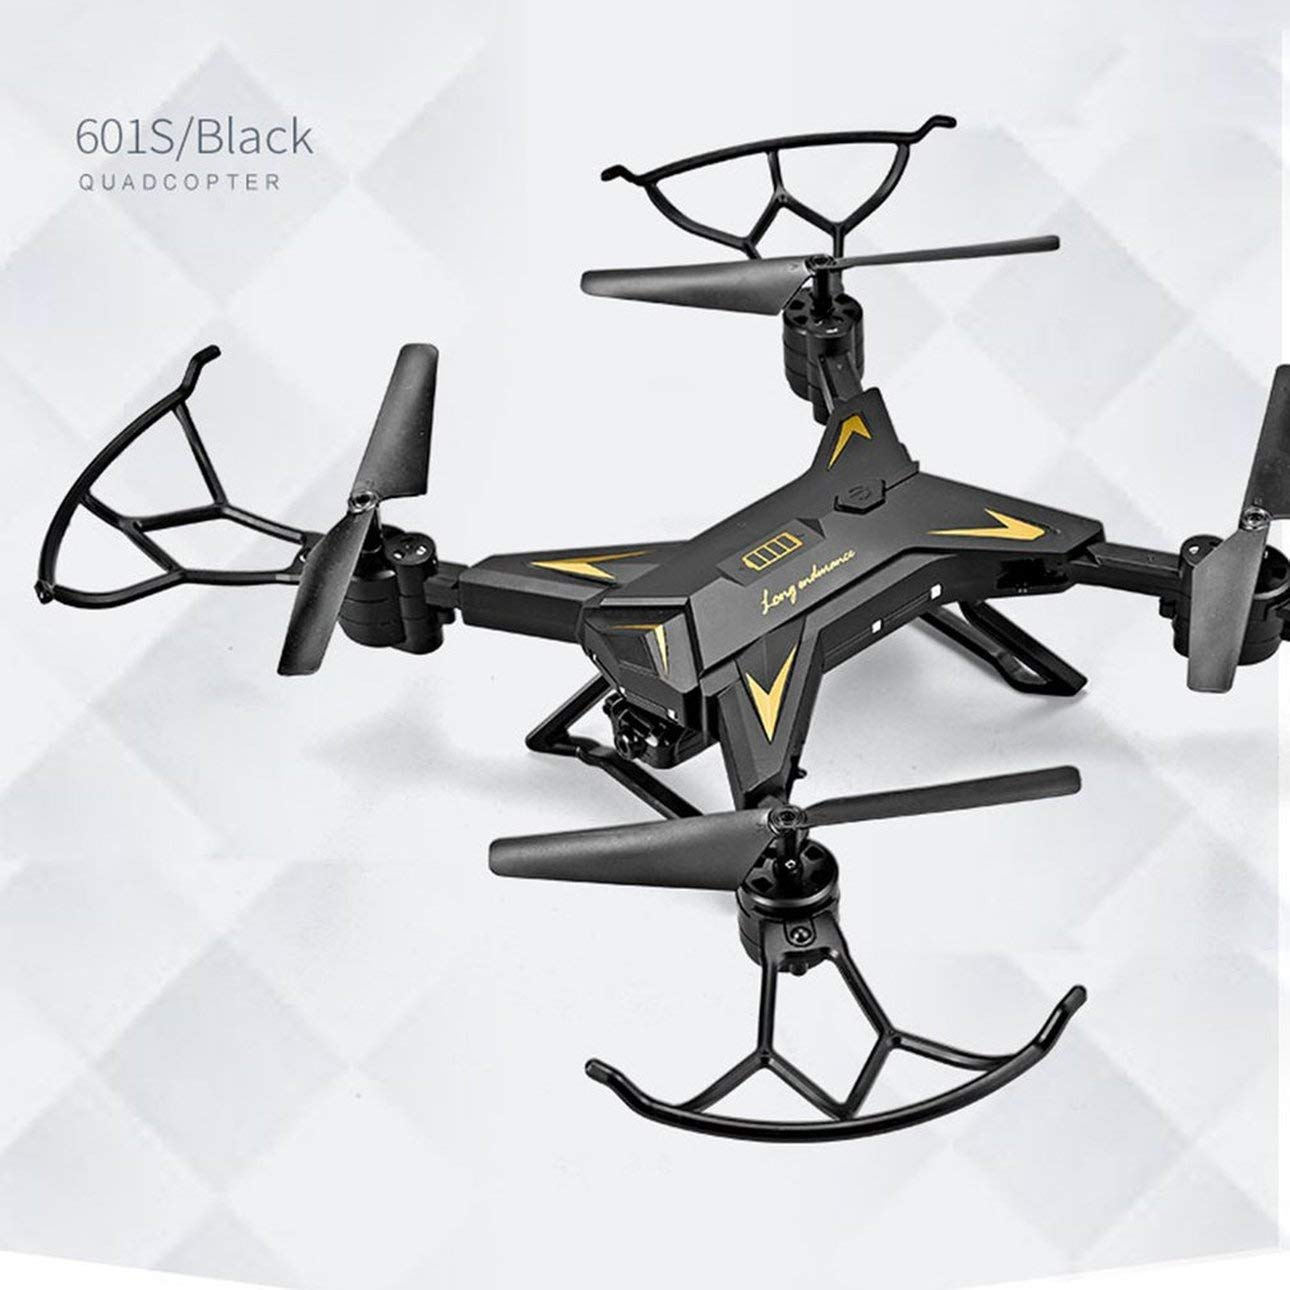 Liobaba KY601S 4 Channel Long Lasting Foldable Arm Remote Control Quadcopter Camera Drone Aircraft 0.3MP